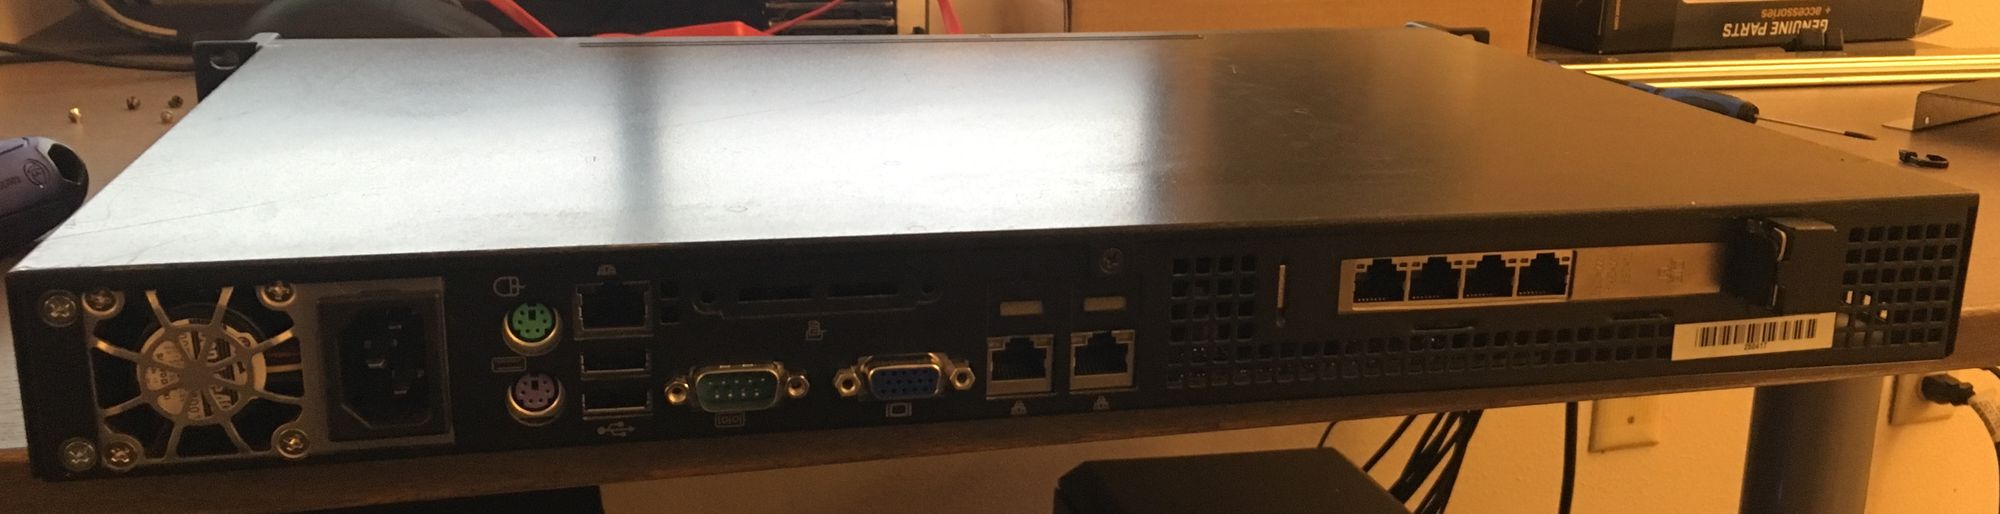 My overkill 1u pfSense build